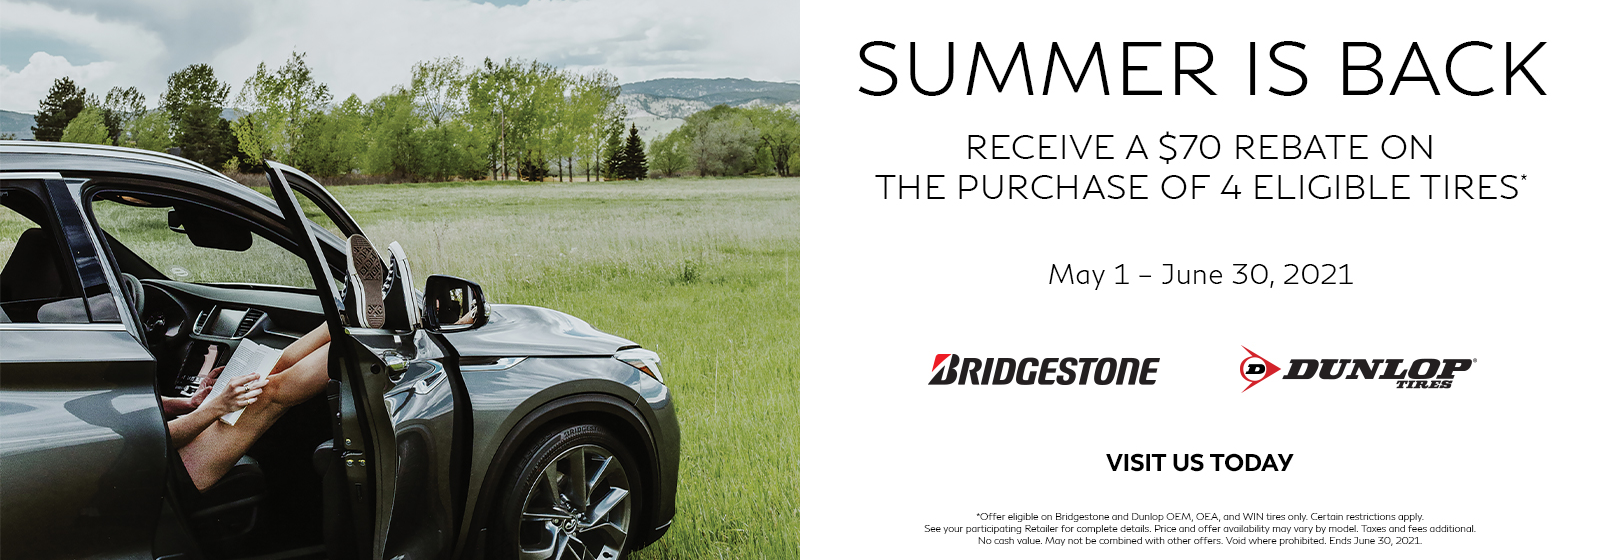 Receive a $70 rebate on the purchase of 4 eligible tires. Offer ends June 30, 2021. See retailer for complete details. Click to shop tires. Click to shop tires.